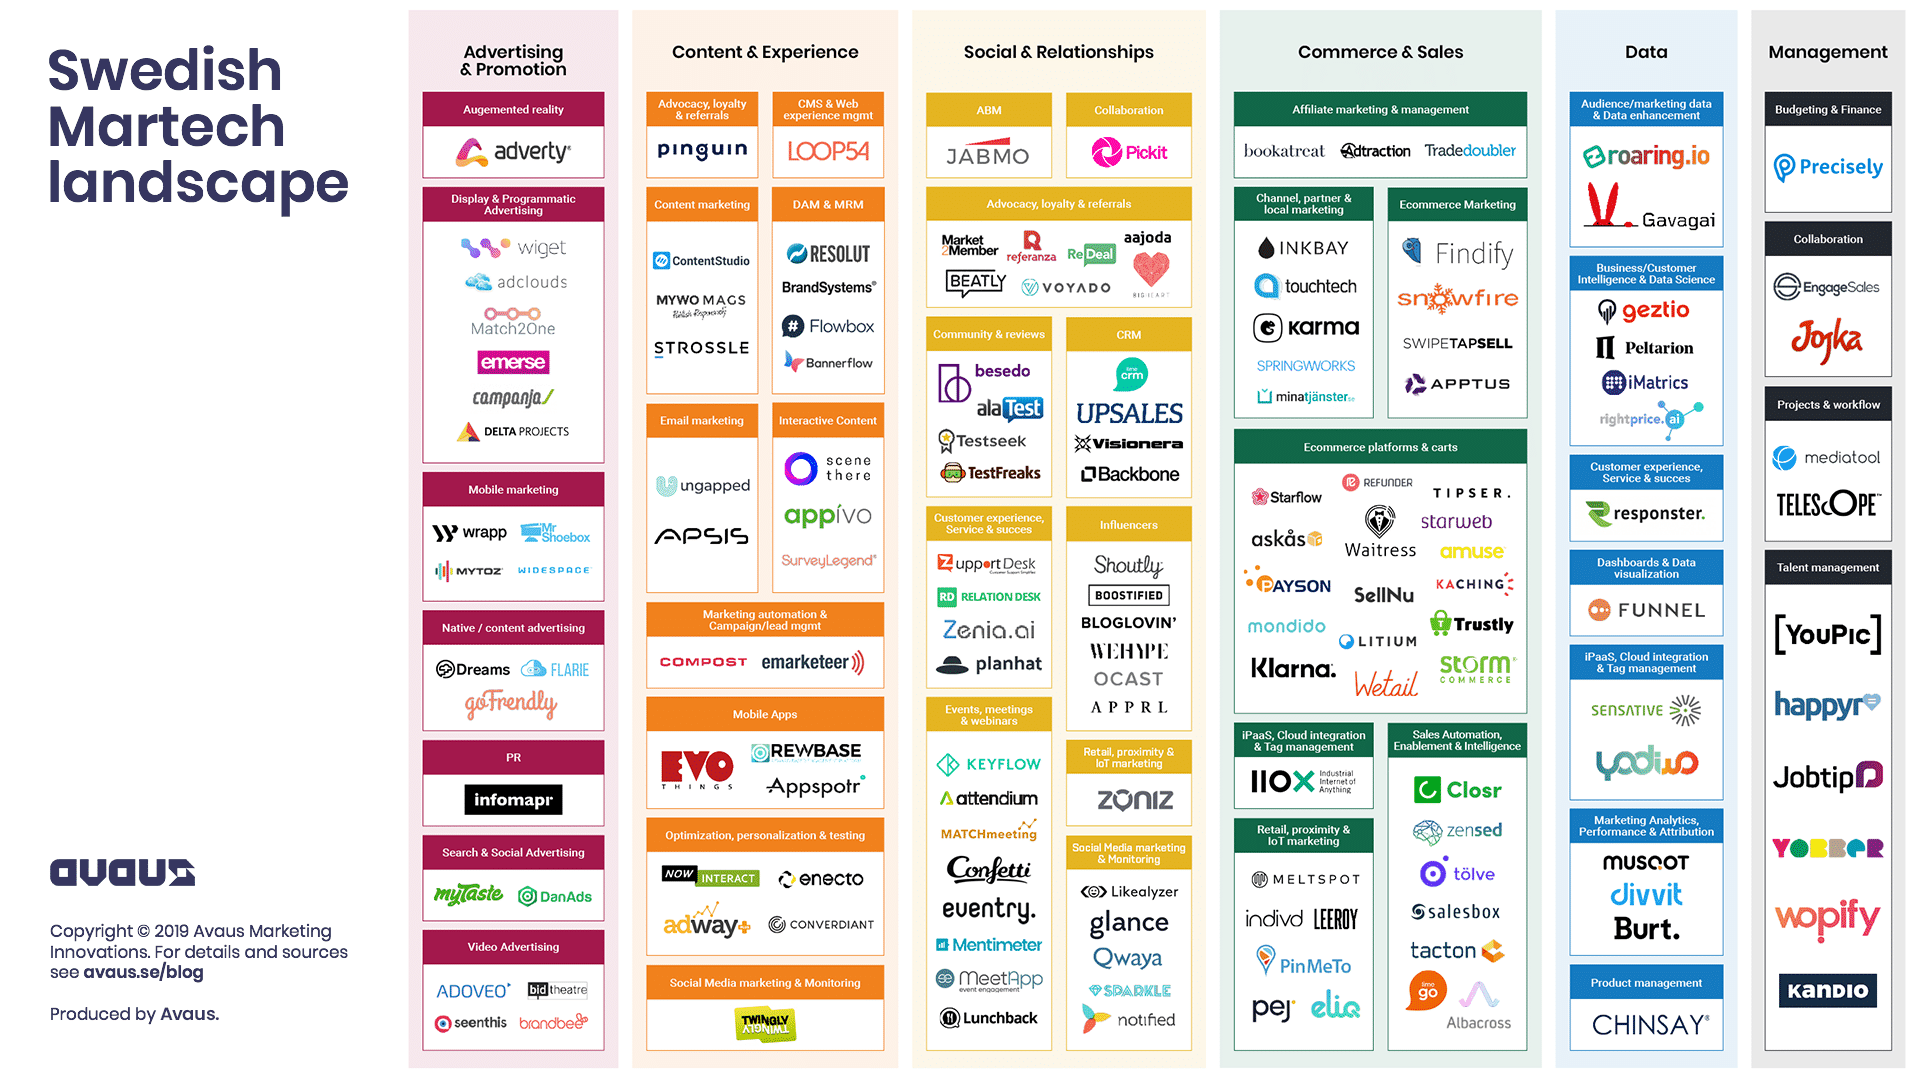 Swedish Martech Landscape 1.4.2019